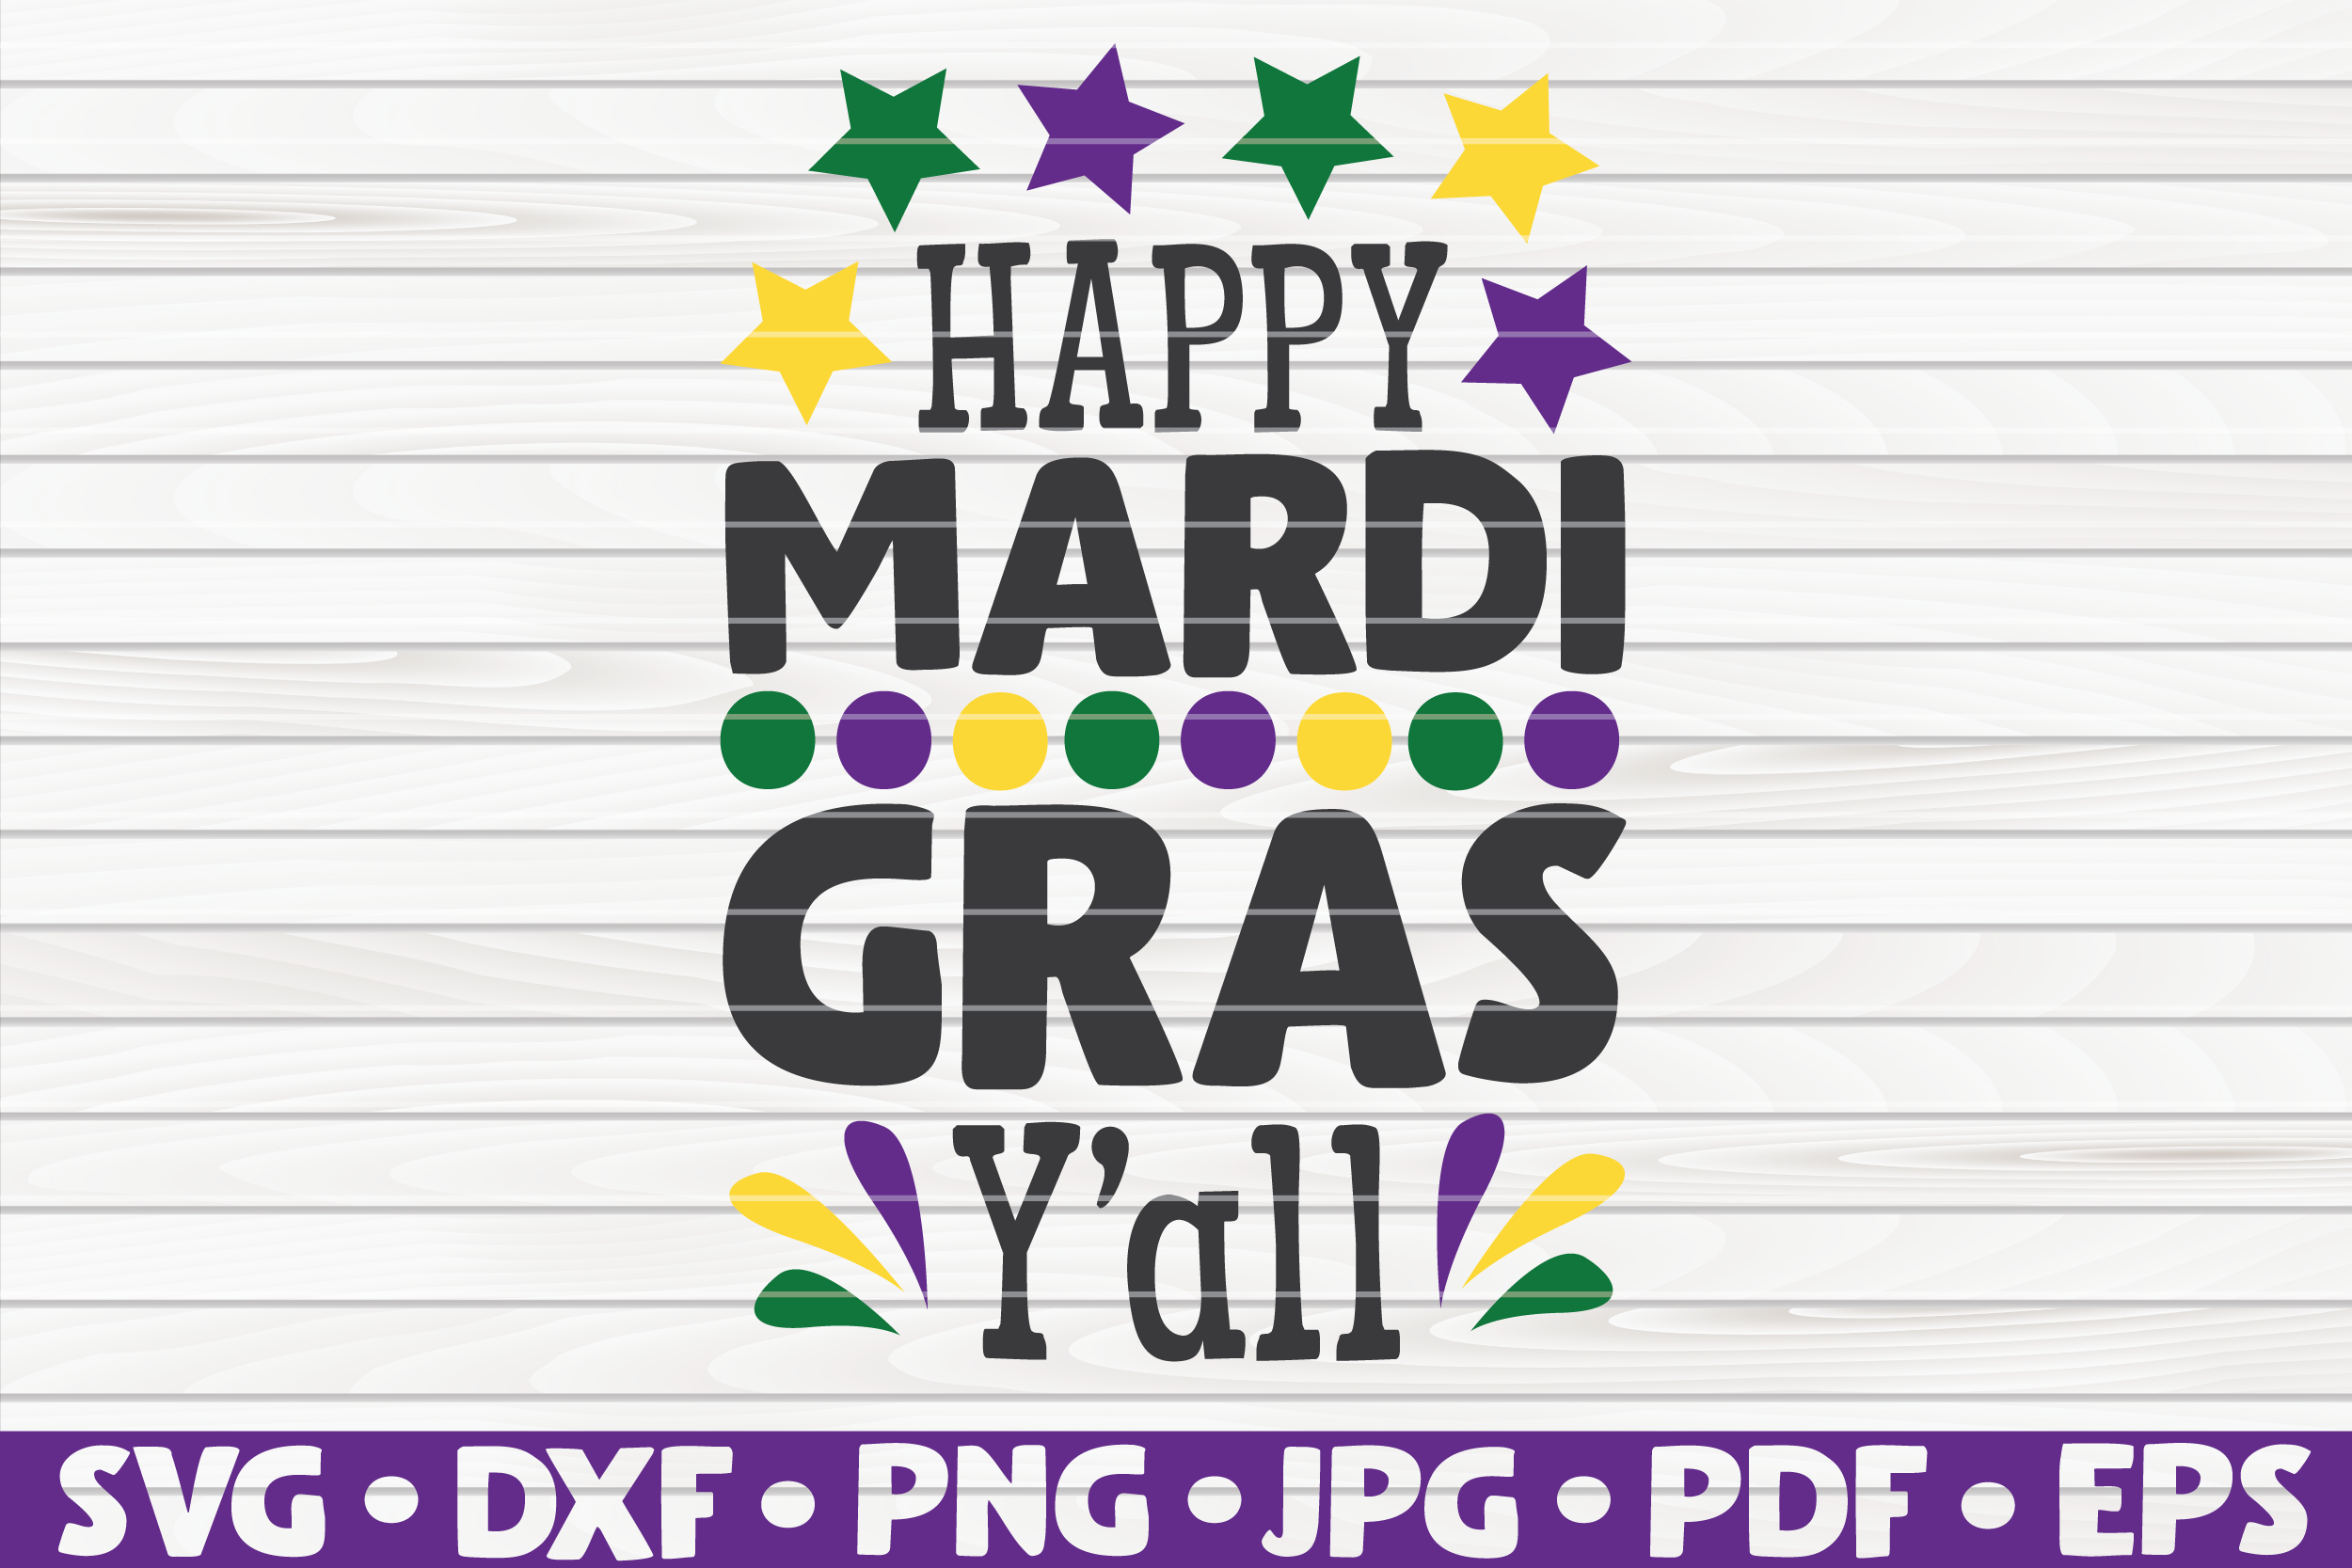 Download Free Happy Mardi Gras Y All Graphic By Mihaibadea95 Creative Fabrica for Cricut Explore, Silhouette and other cutting machines.